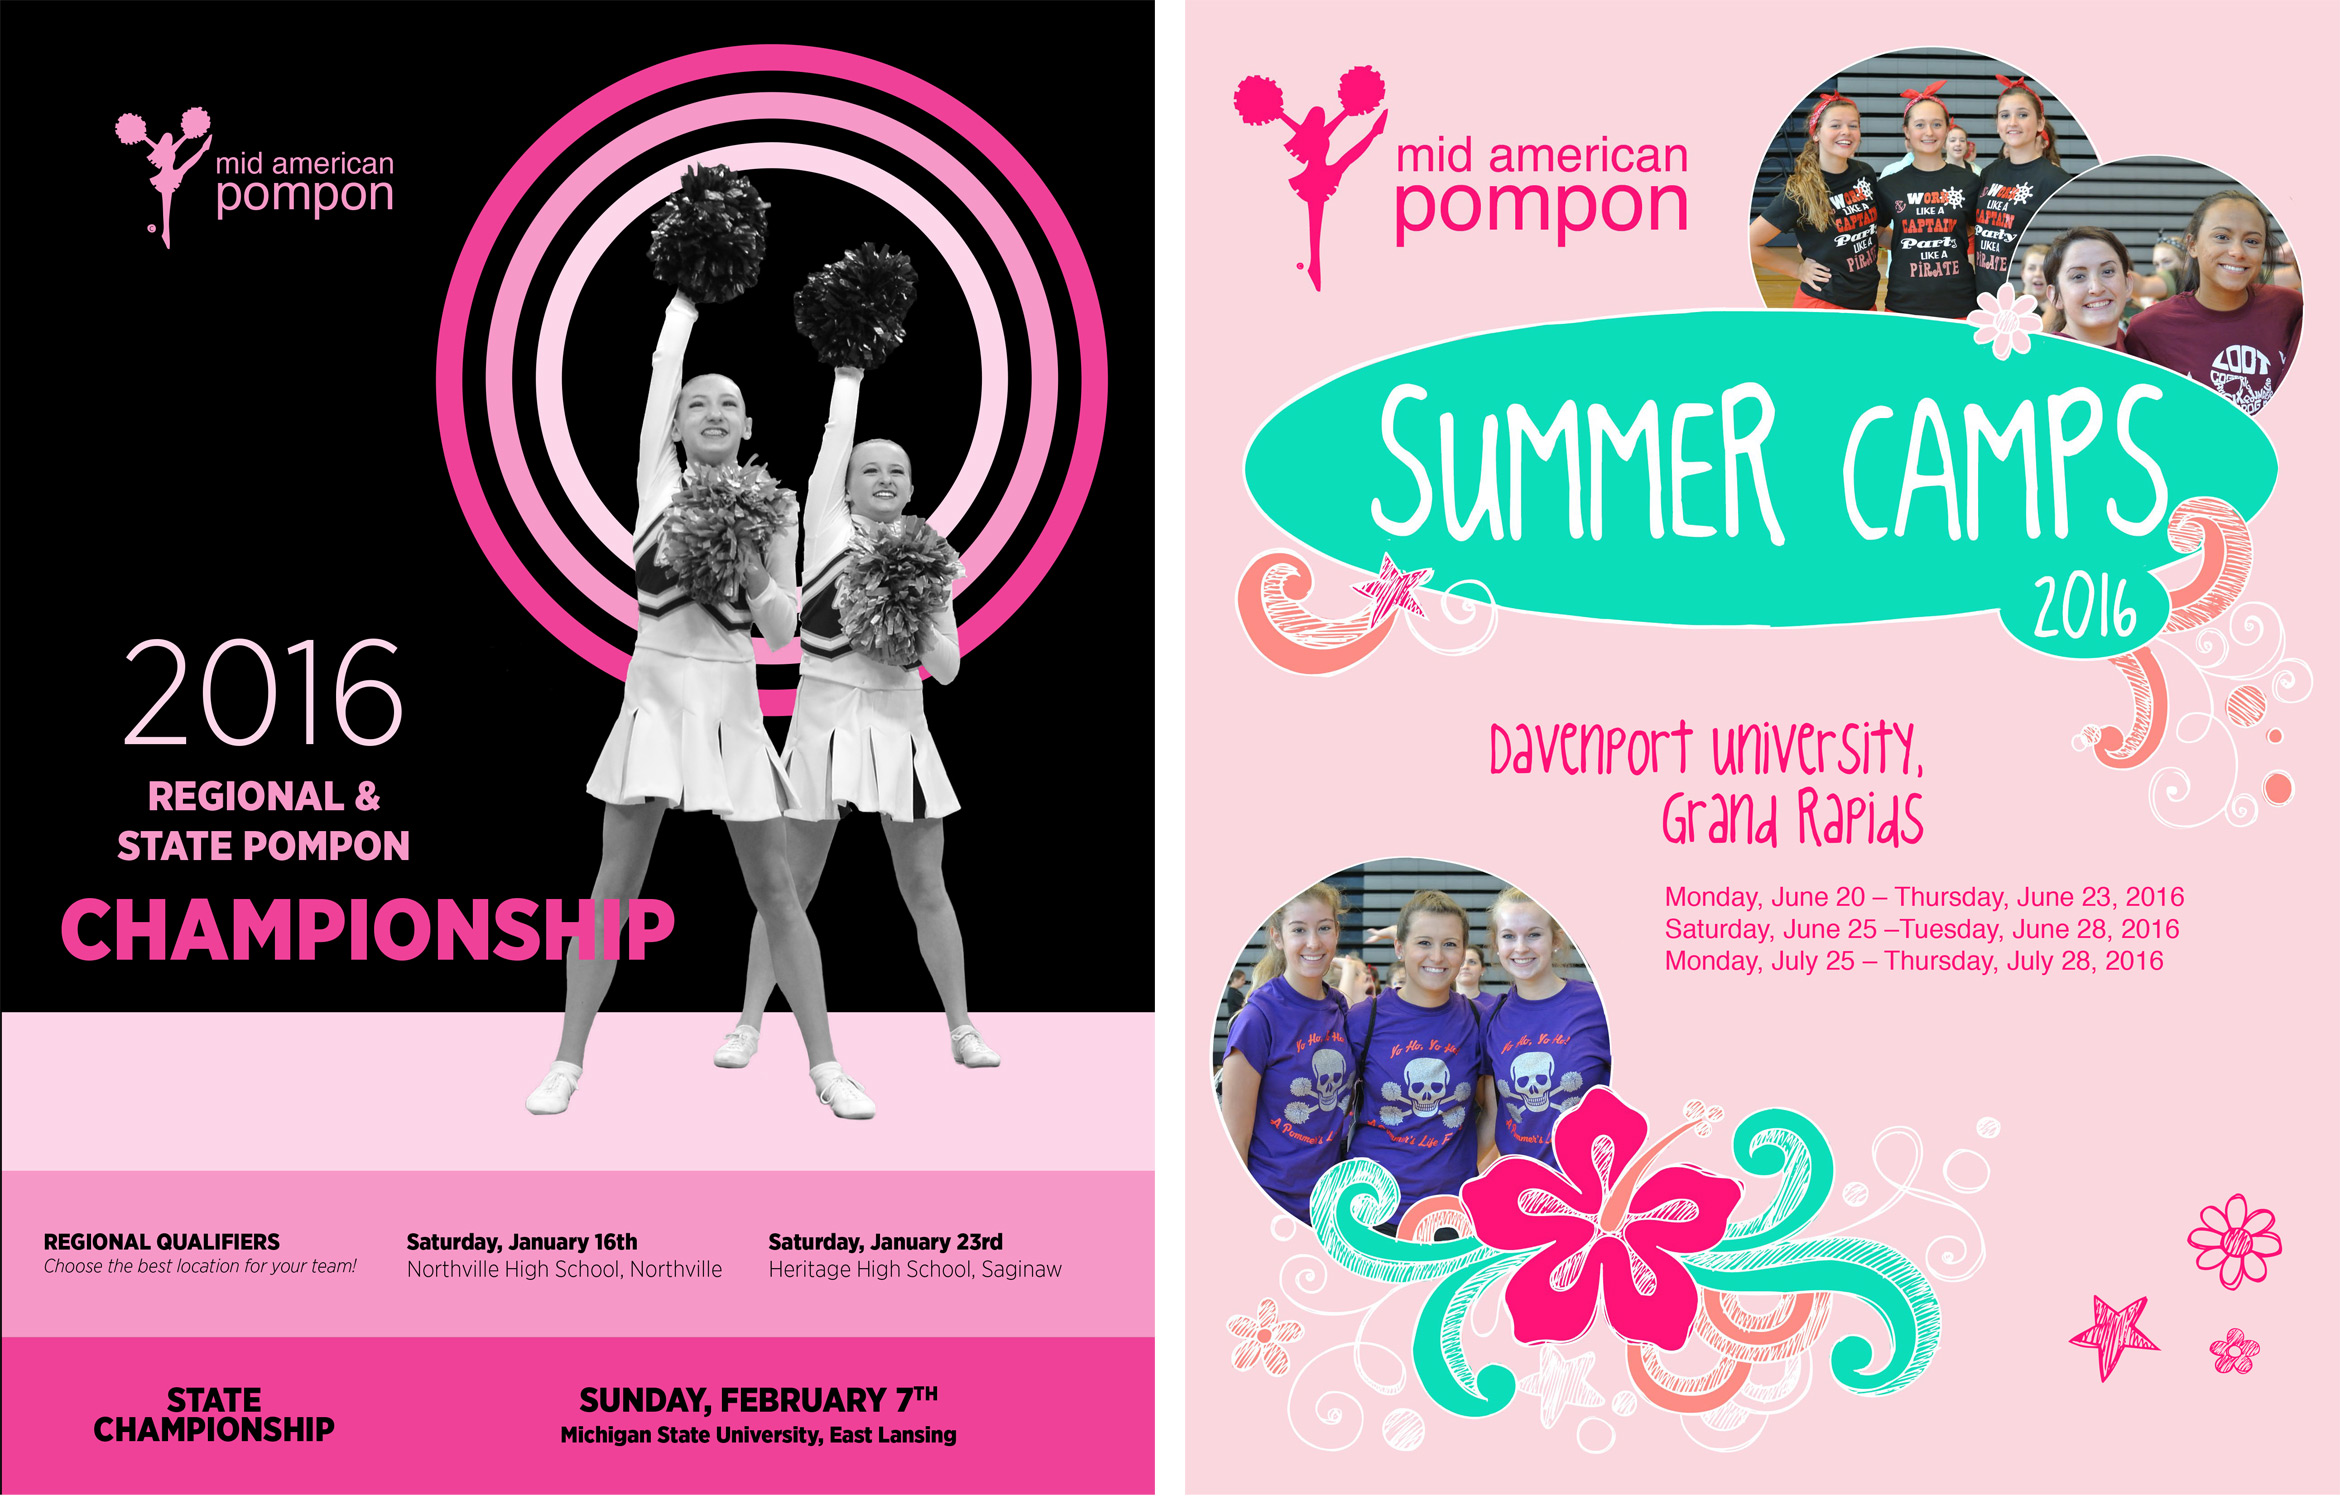 Mid American Pompon Event brochure covers